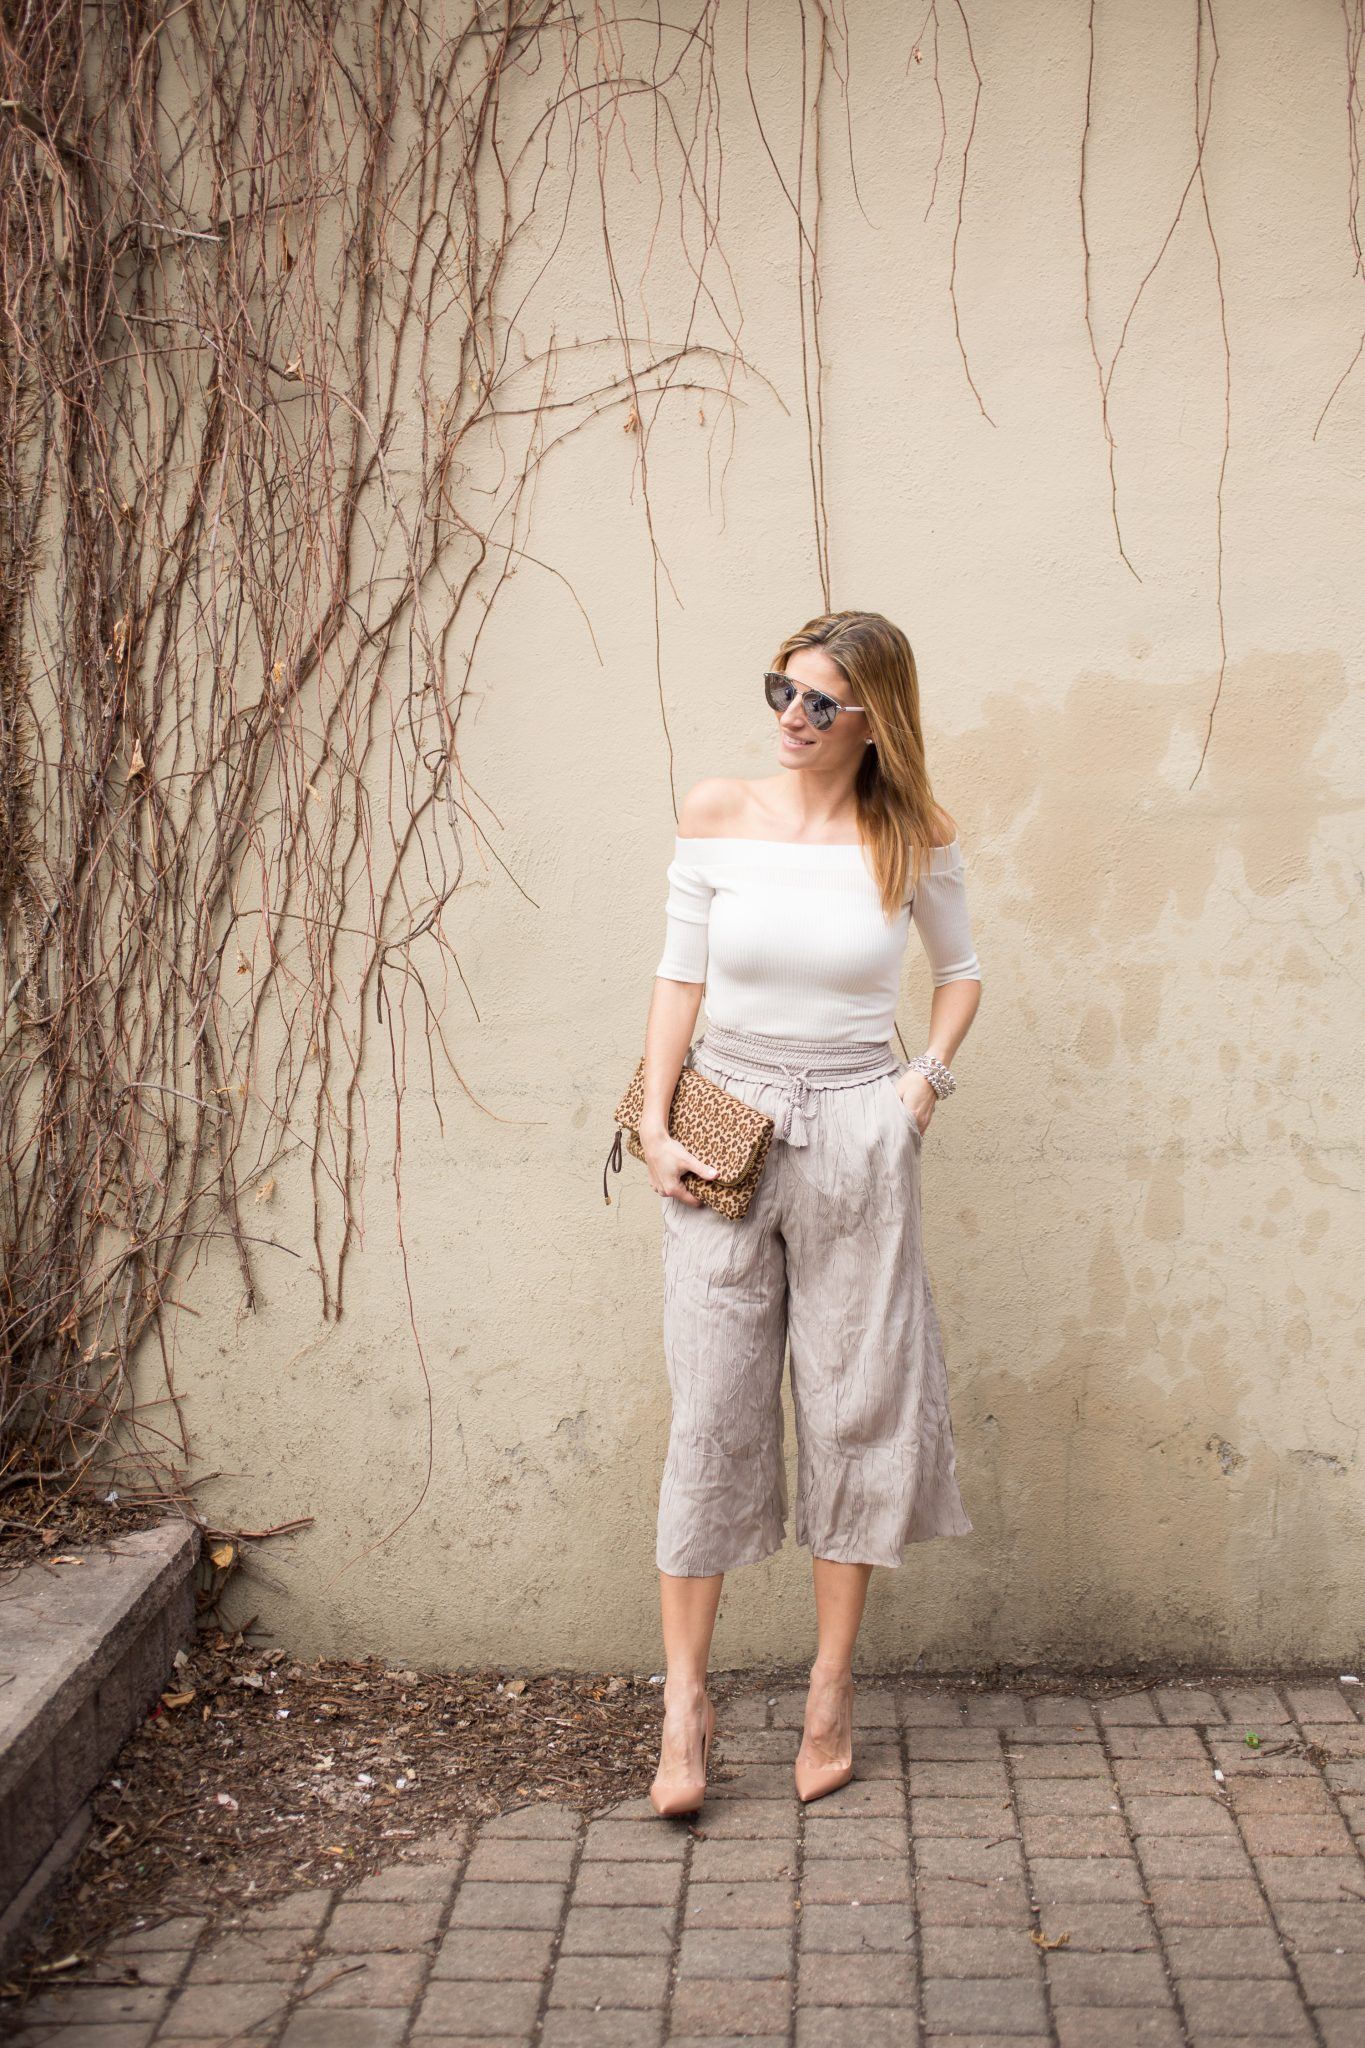 Lucky 7 Ribbed Off the Shoulder Top Jean Machine, Wilfred Nanterre pants from Aritzia, Nude Christian Louboutin pumps, Dior So Real Sunglasses, leopard print clutch from Charming Charlie